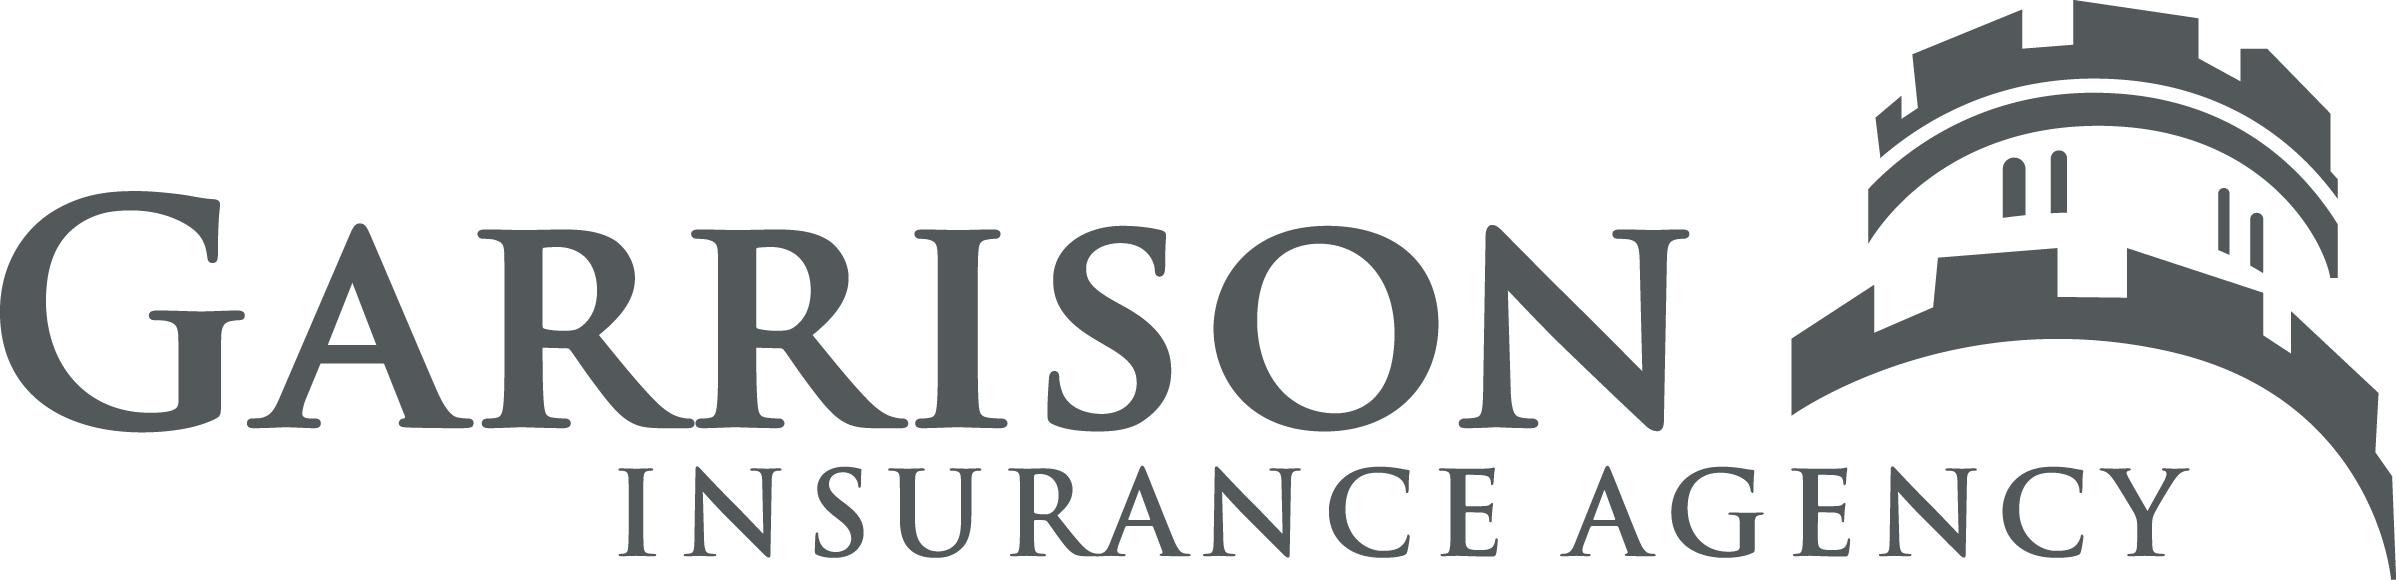 Insurance Garrison Insurance Agency Free Quotes